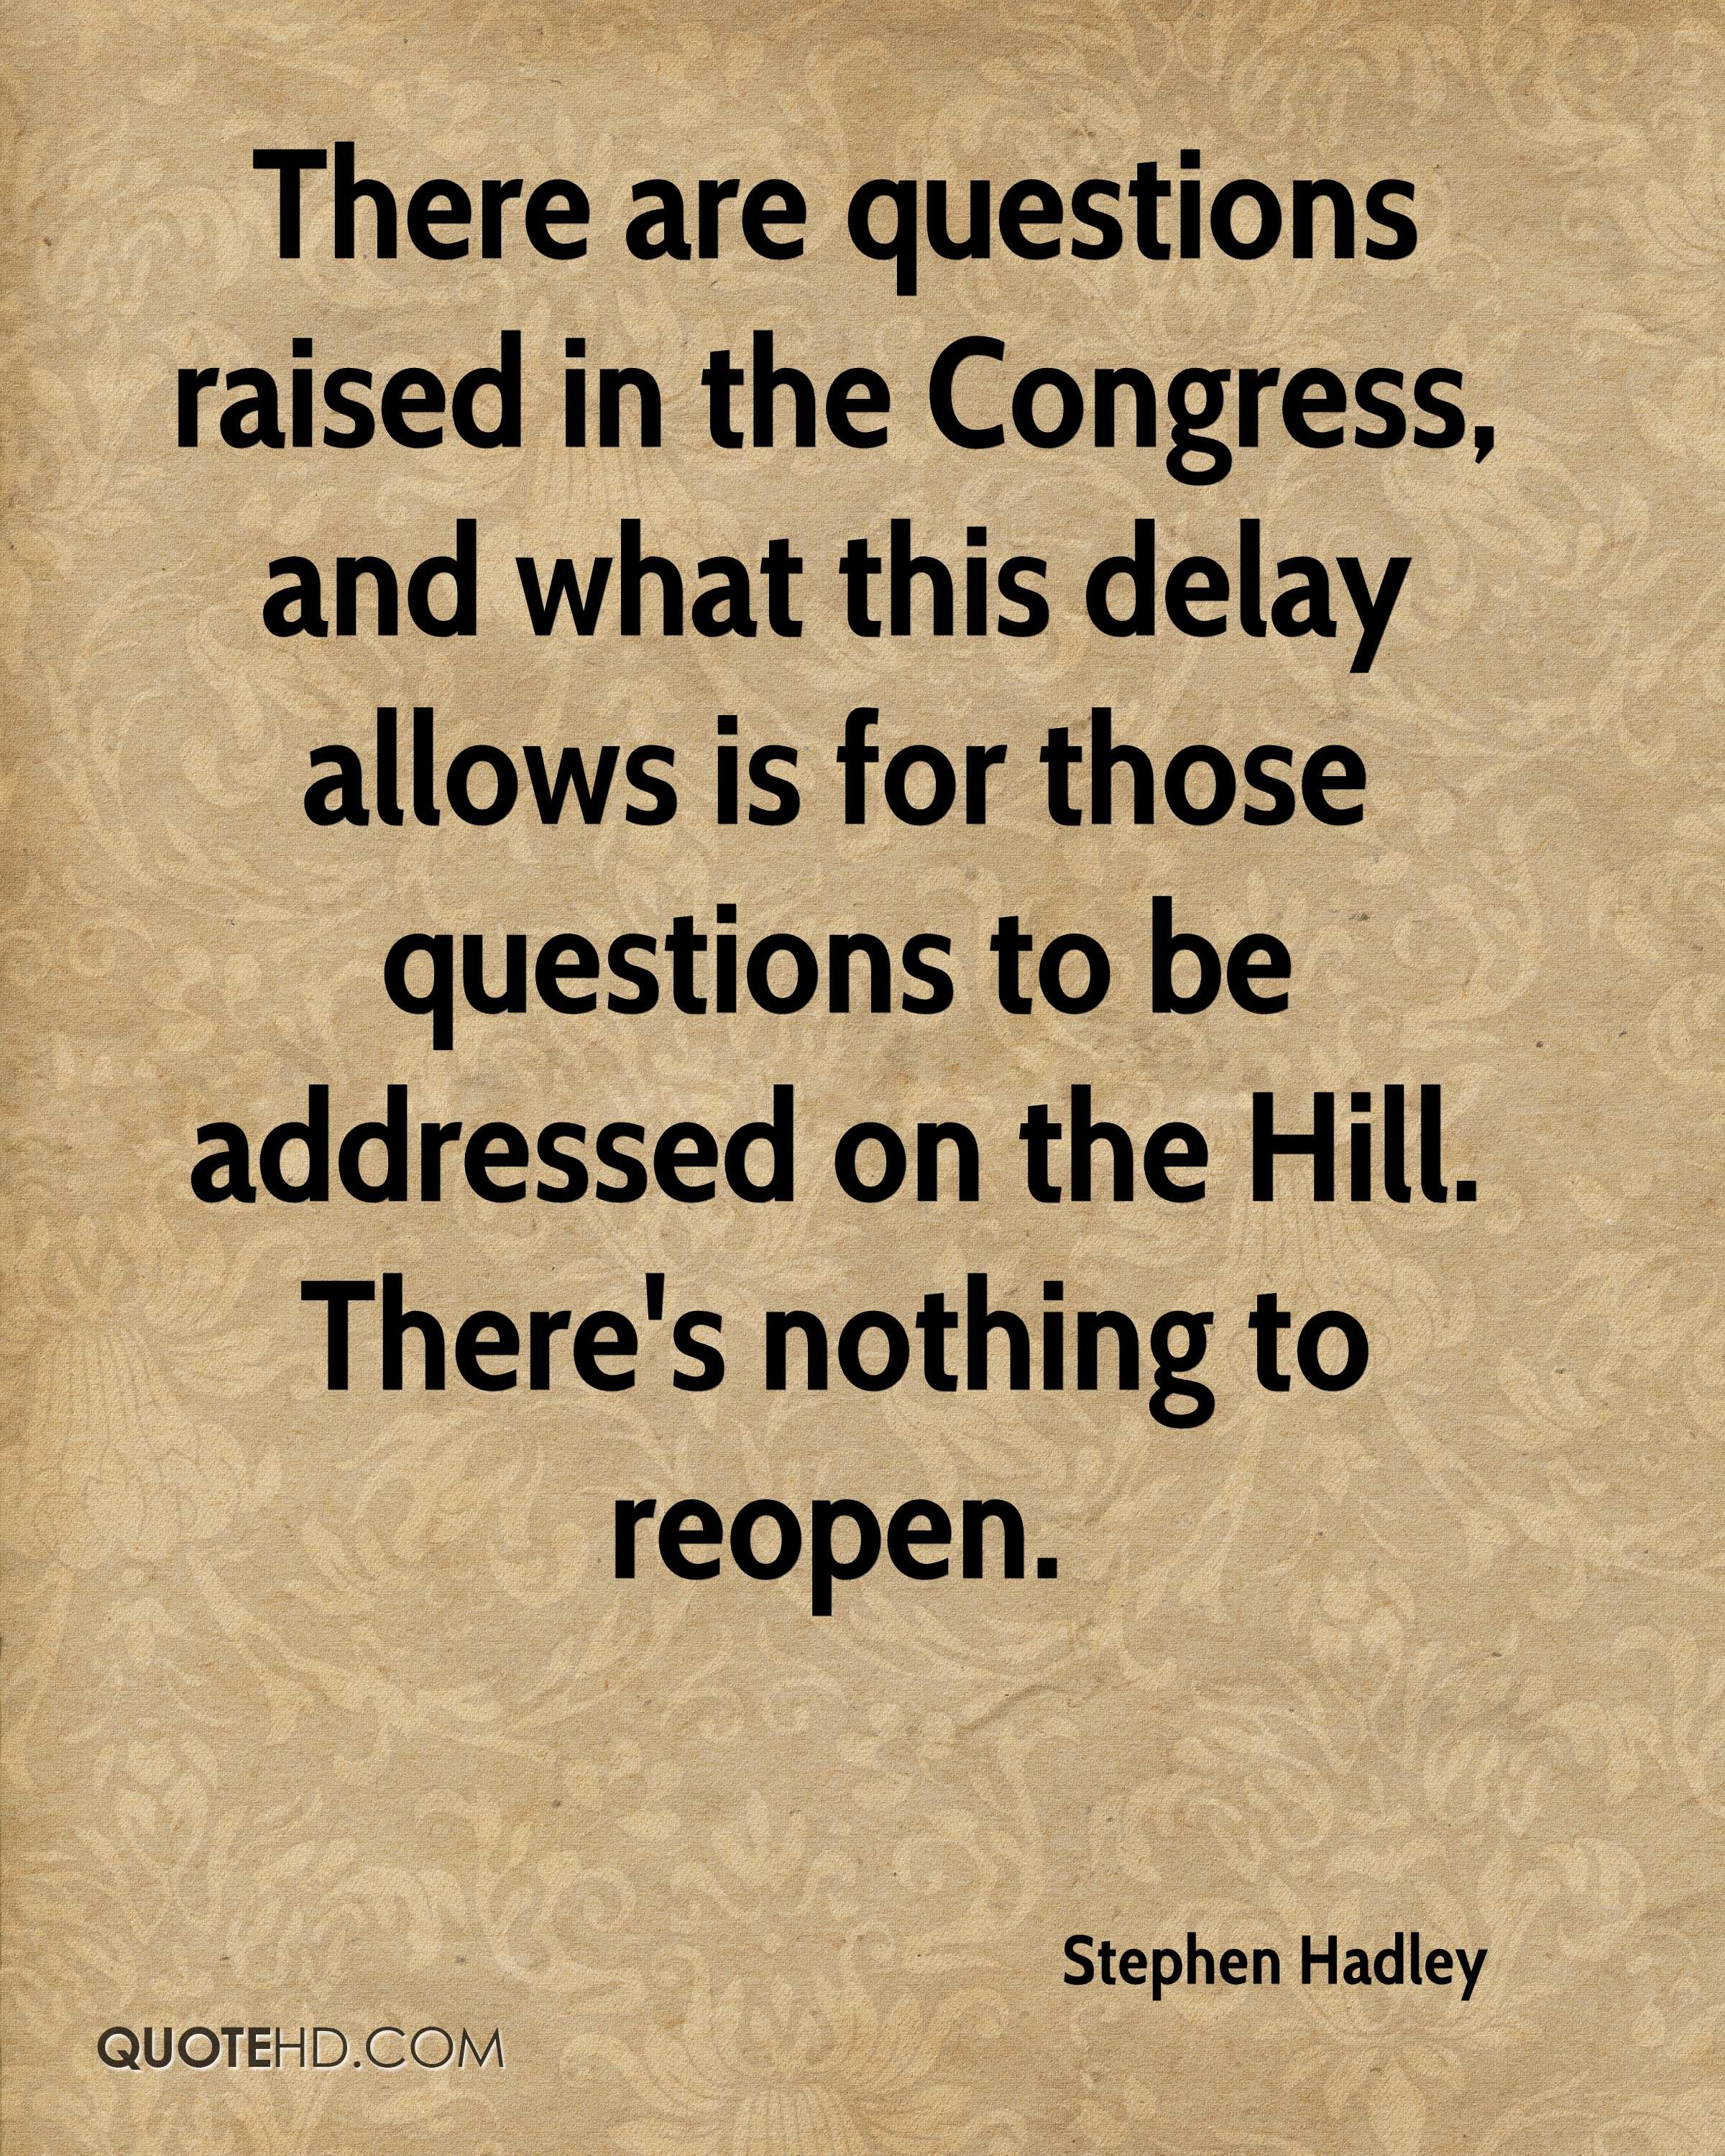 There are questions raised in the Congress, and what this delay allows is for those questions to be addressed on the Hill. There's nothing to reopen.